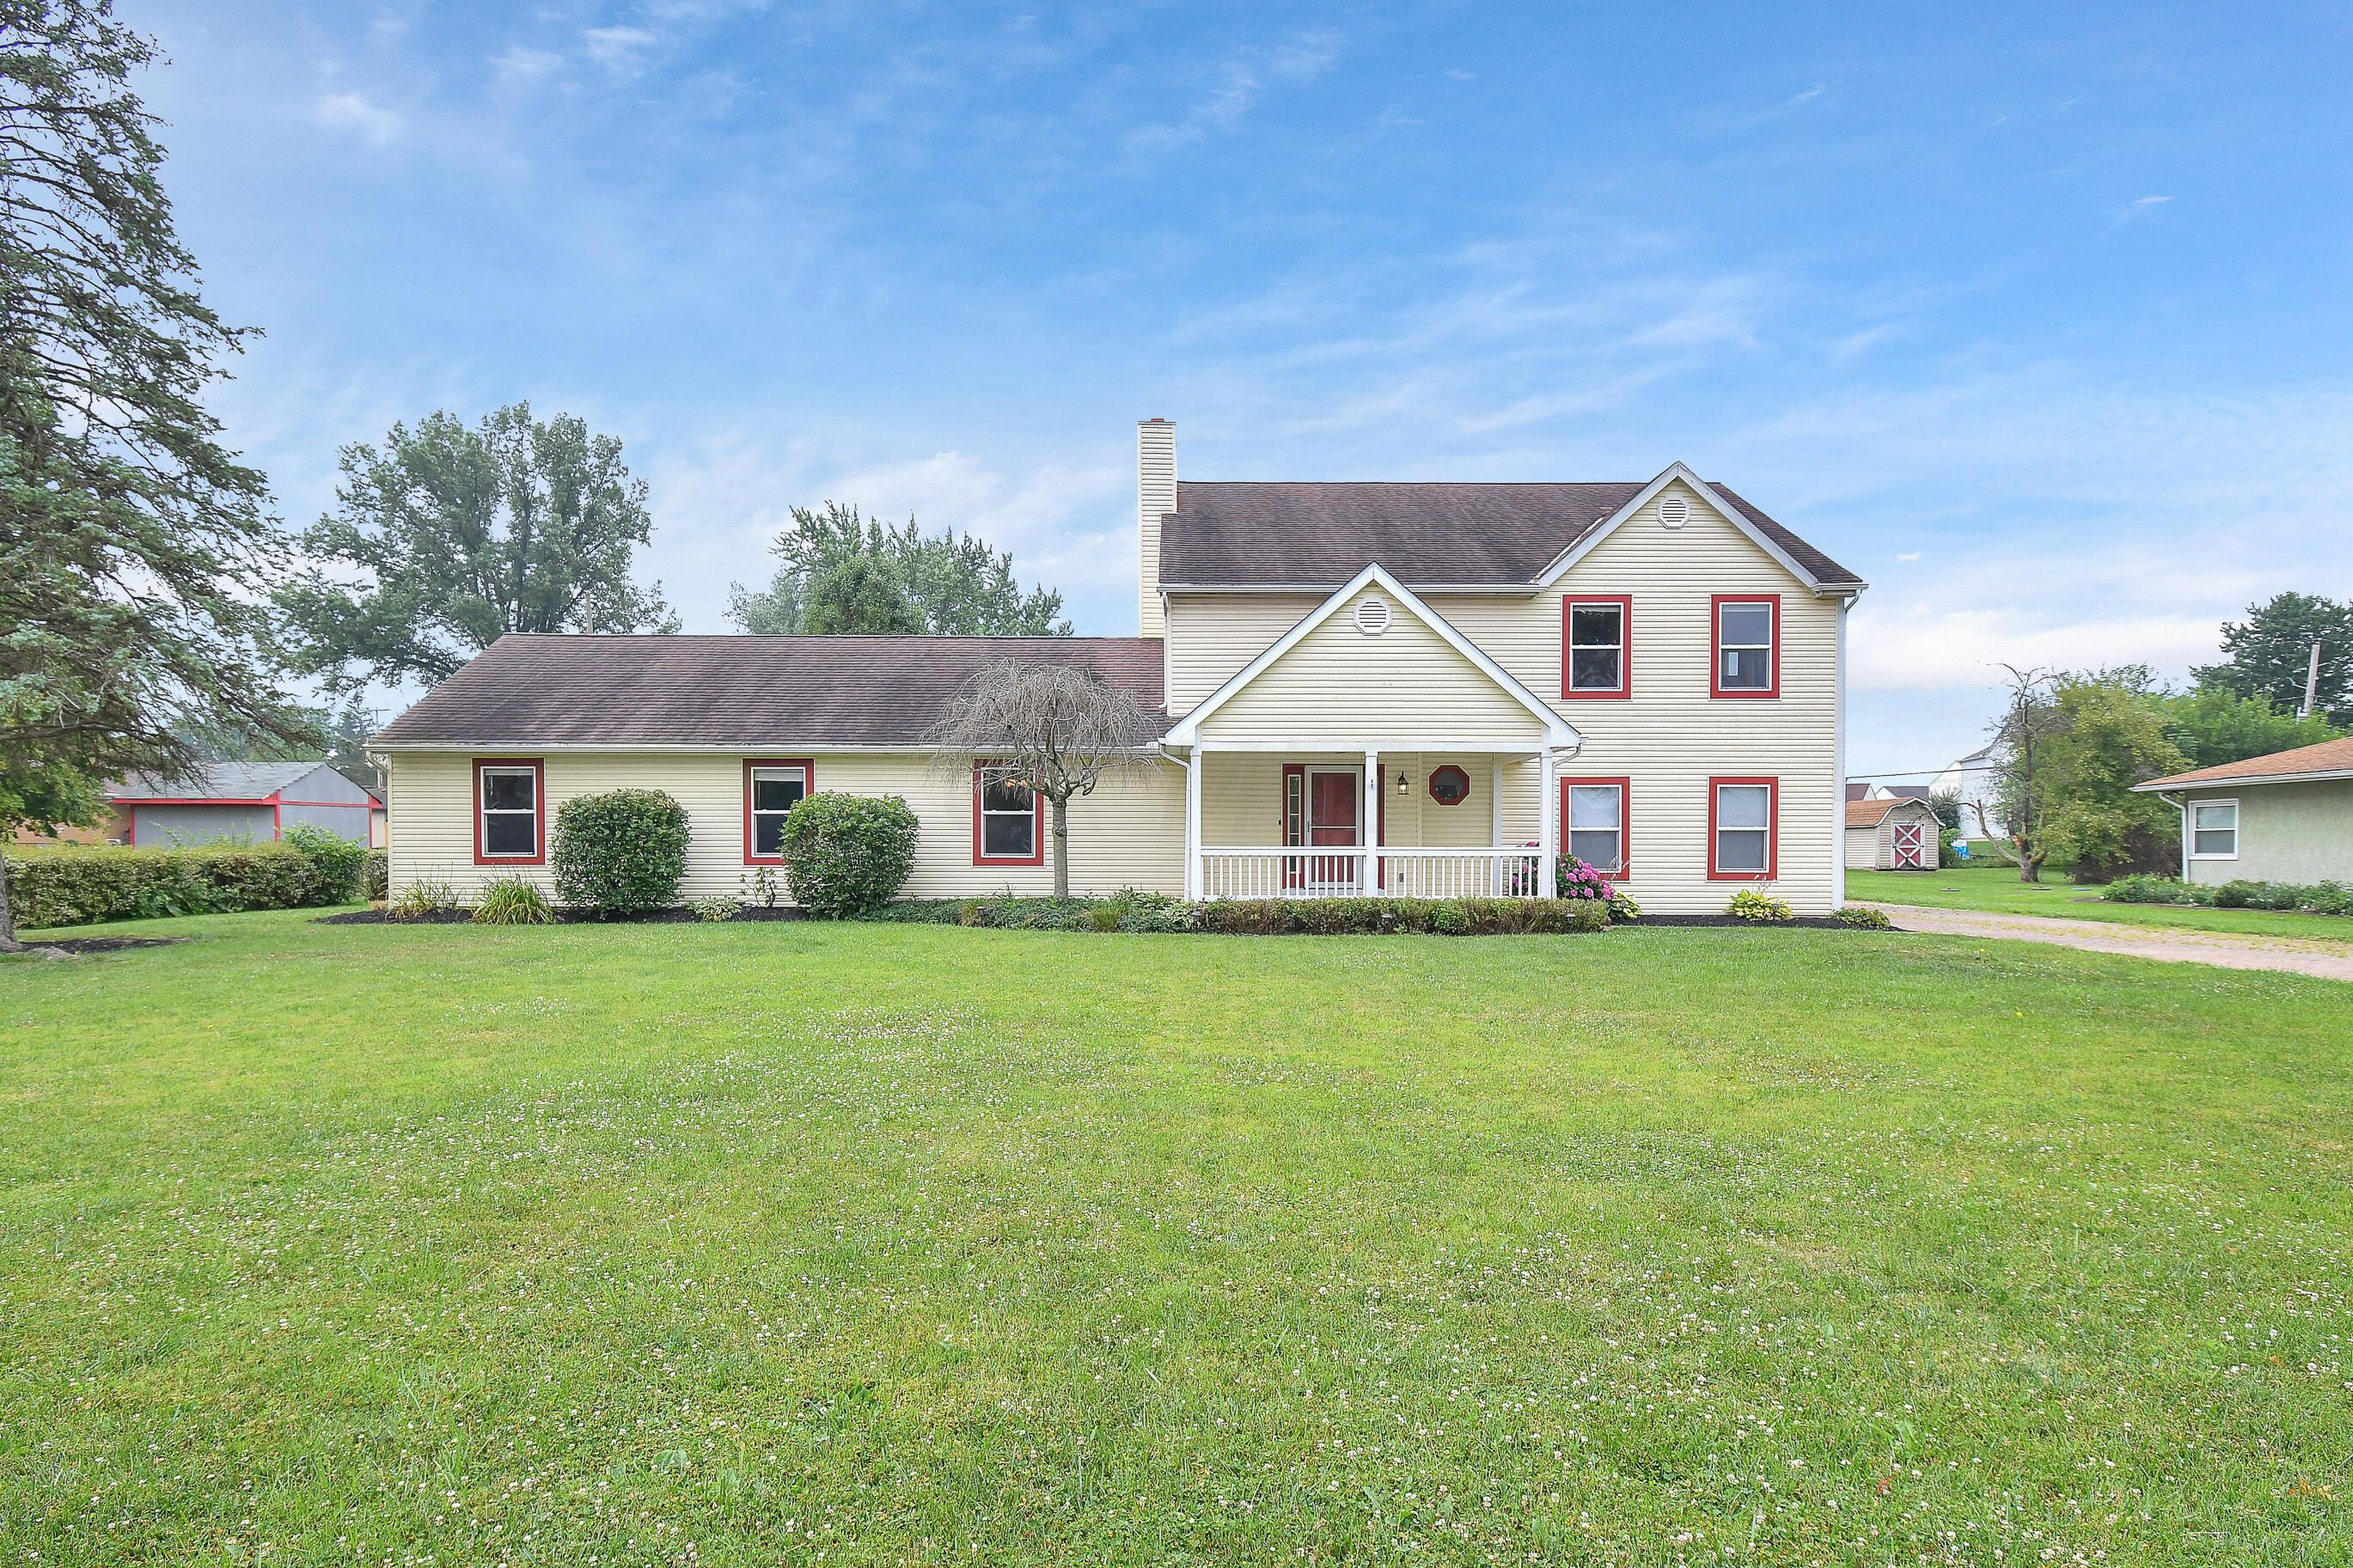 Photo of 5199 Bixby Road, Groveport, OH 43125